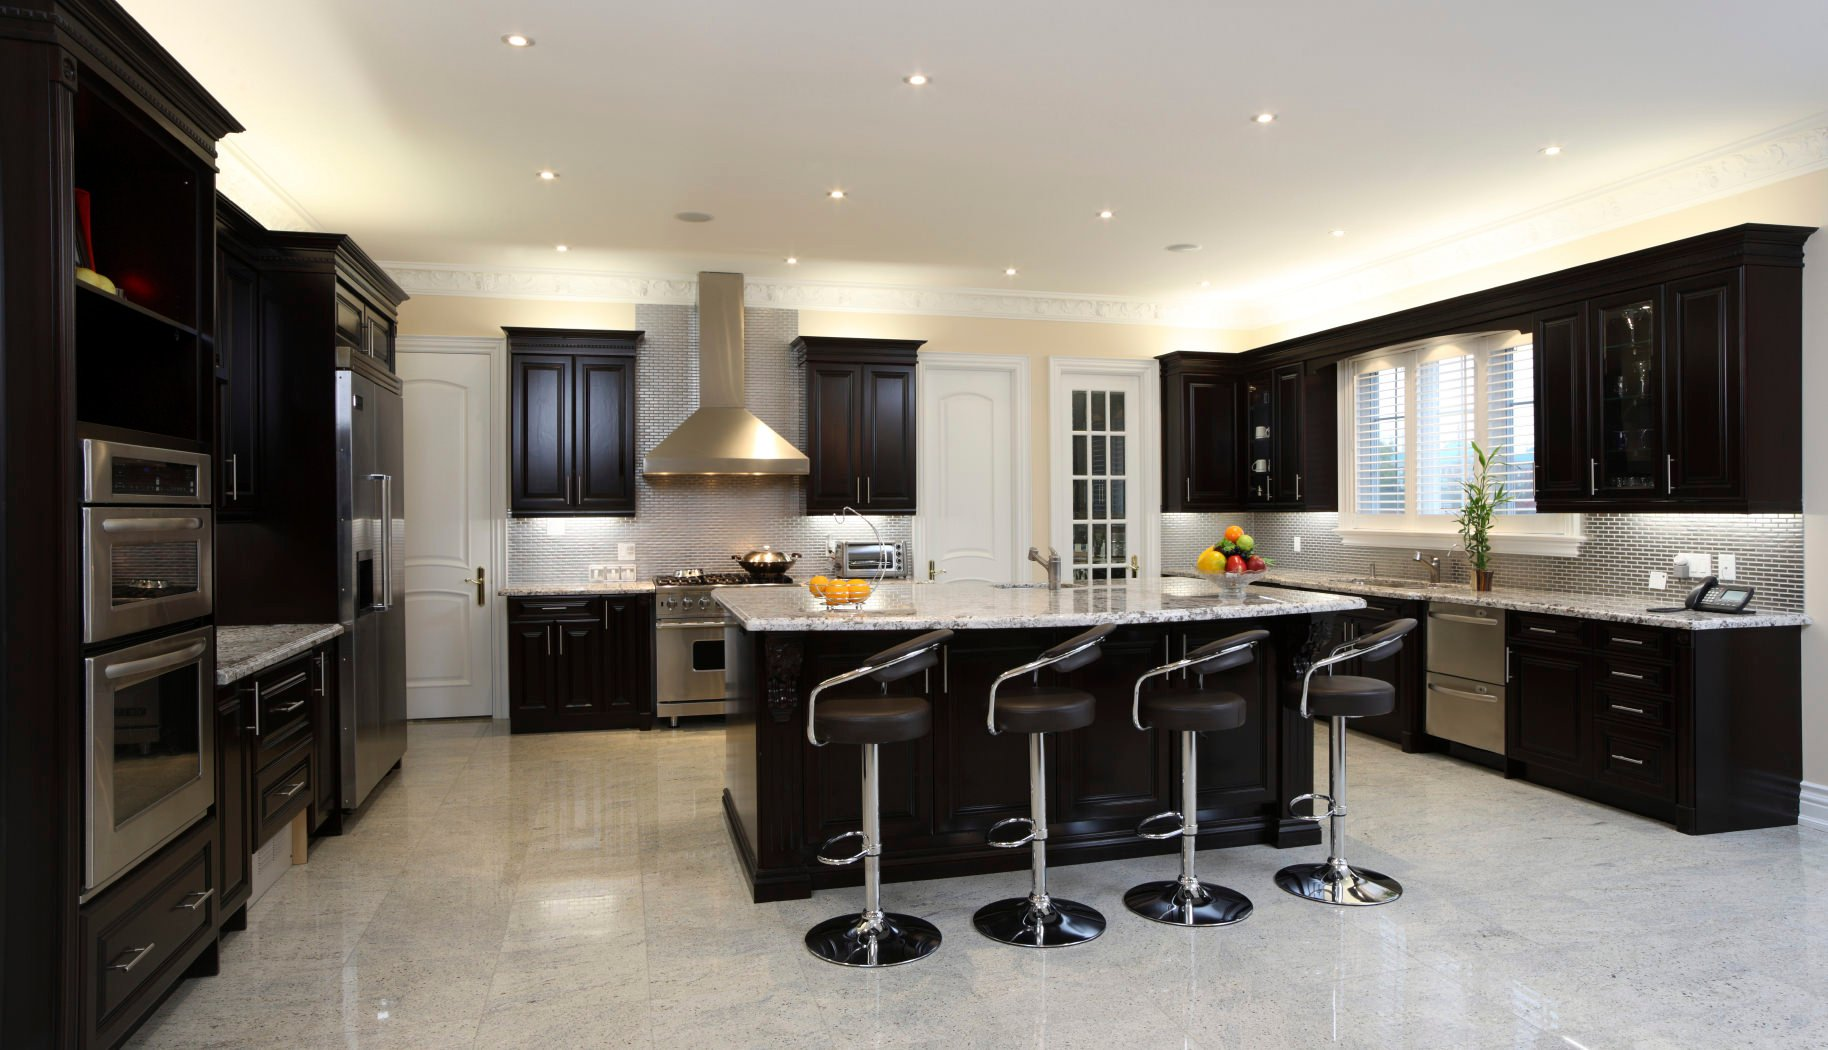 Black and white themed U-kitchen with black enamel cabinets, stainless steel appliances, breakfast island, and tiled floor.